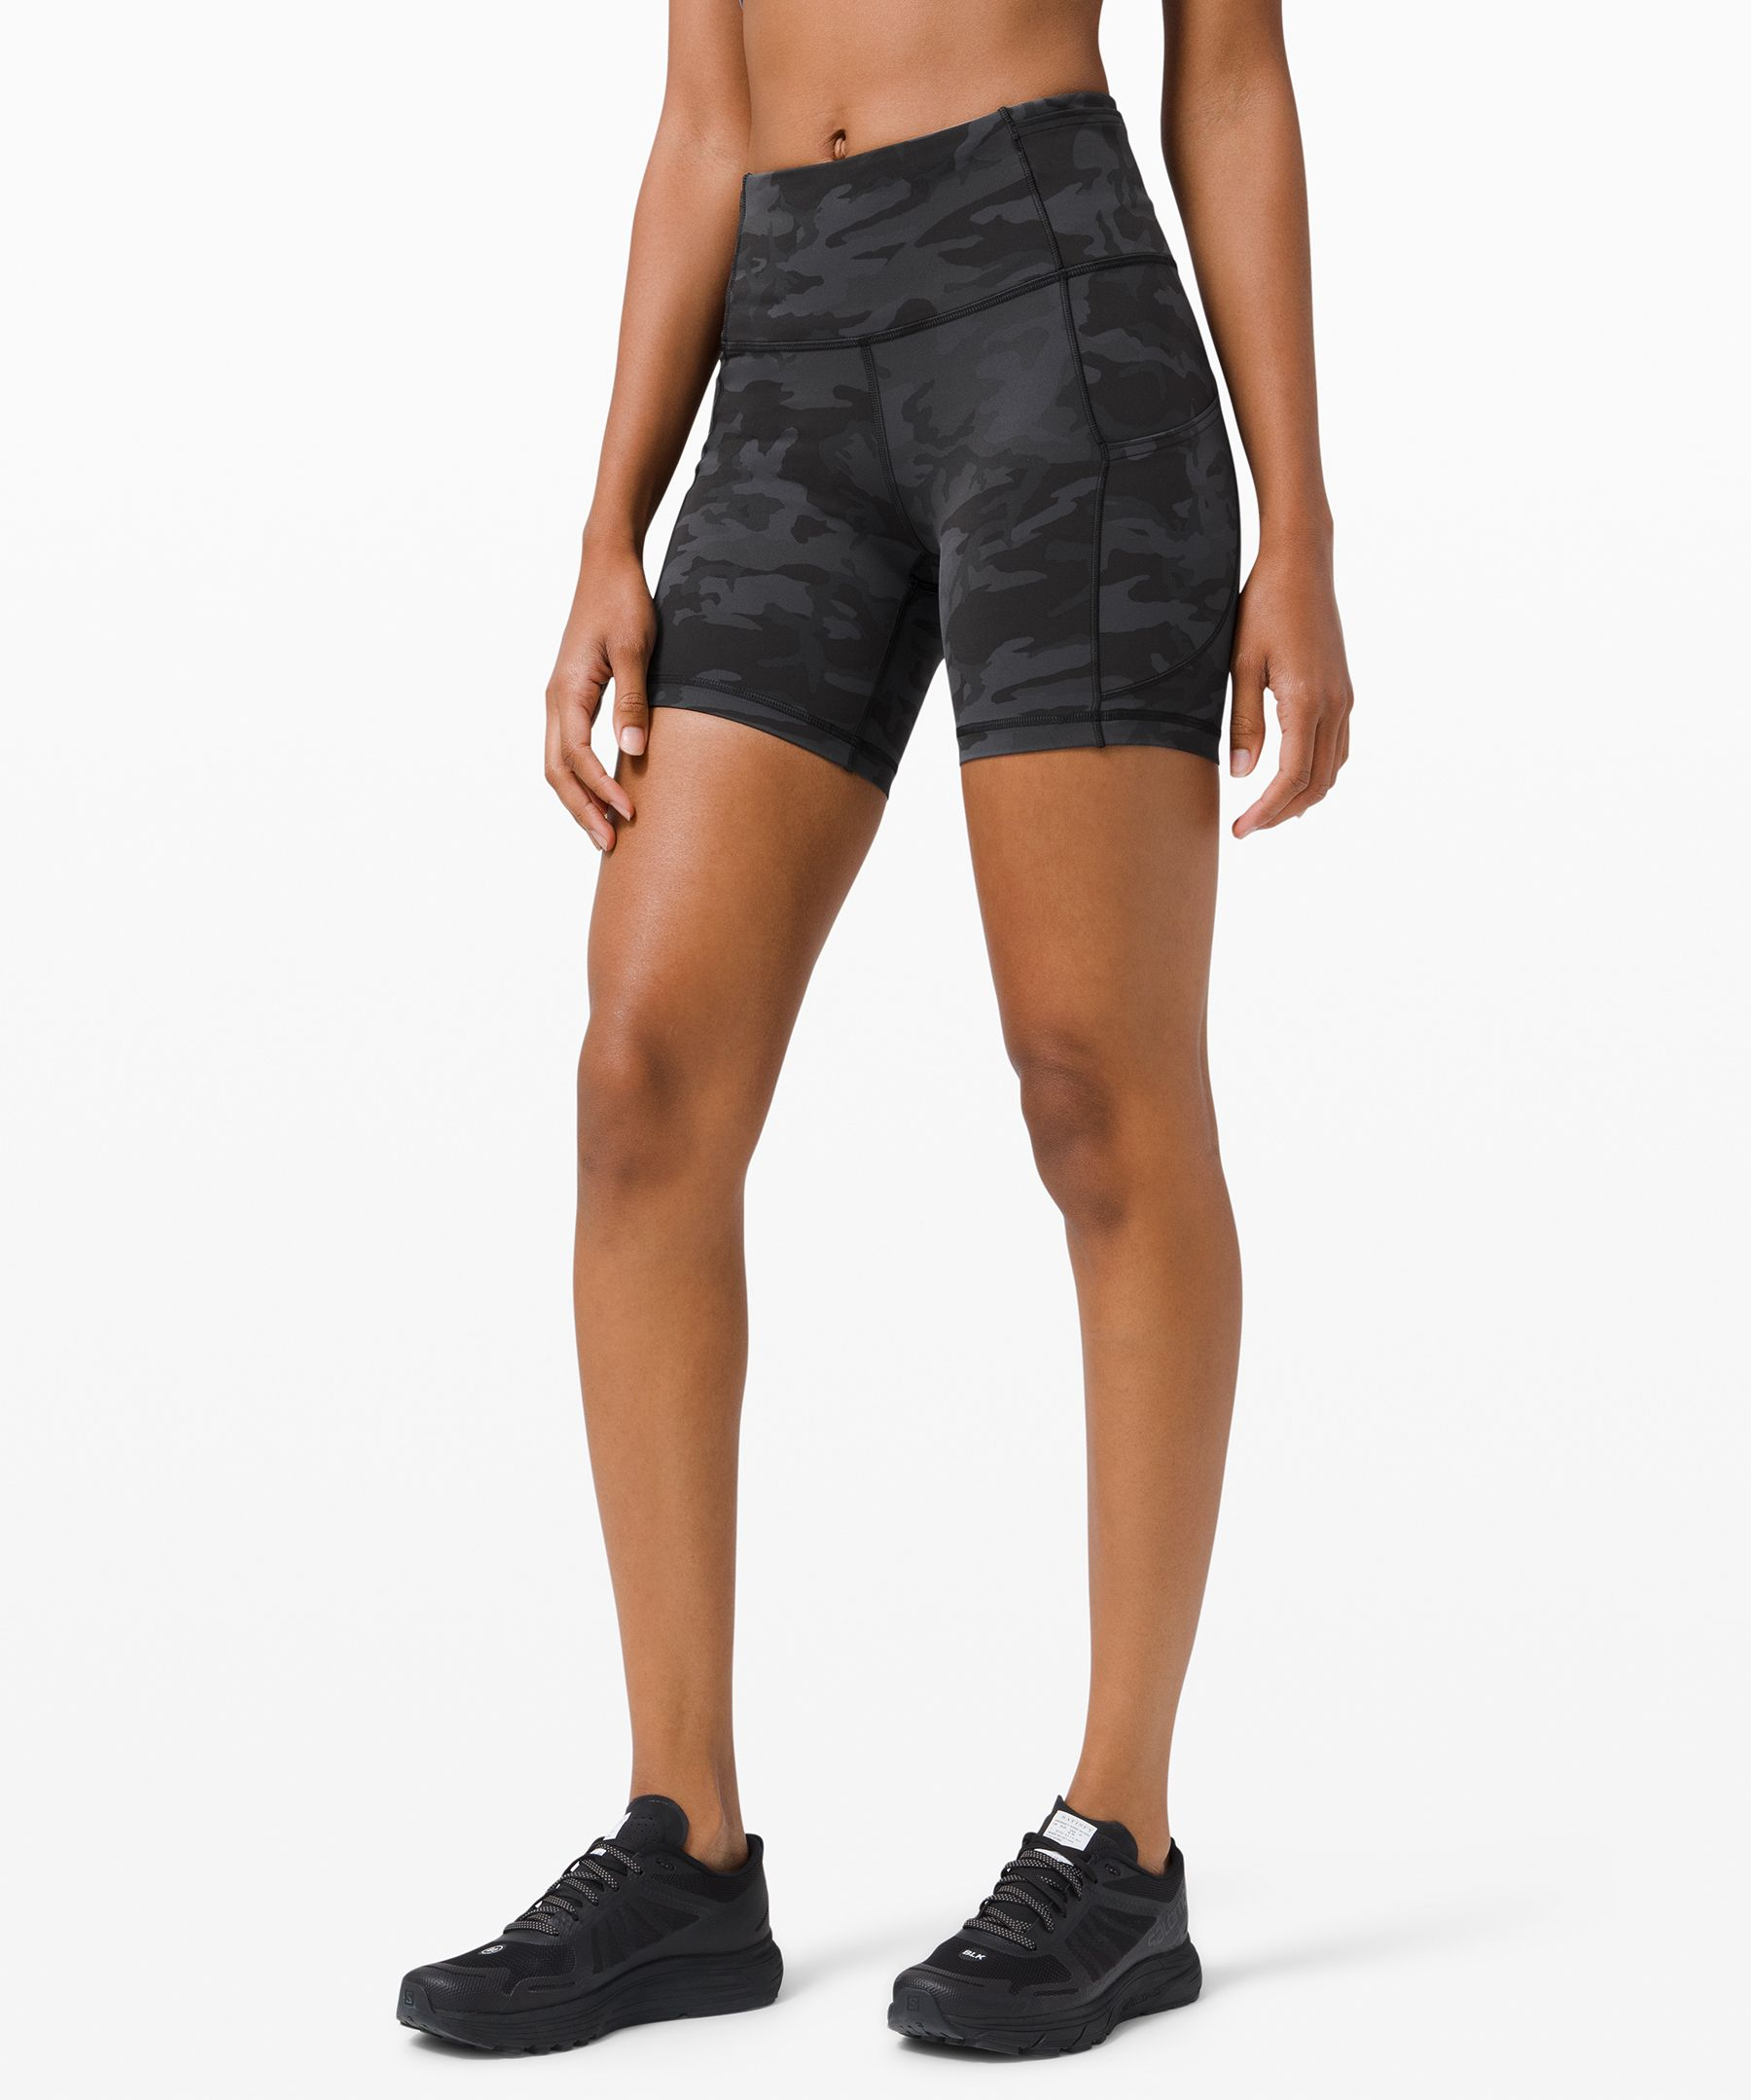 Fast And Free Short 6 Non Reflective Women S Shorts Lululemon